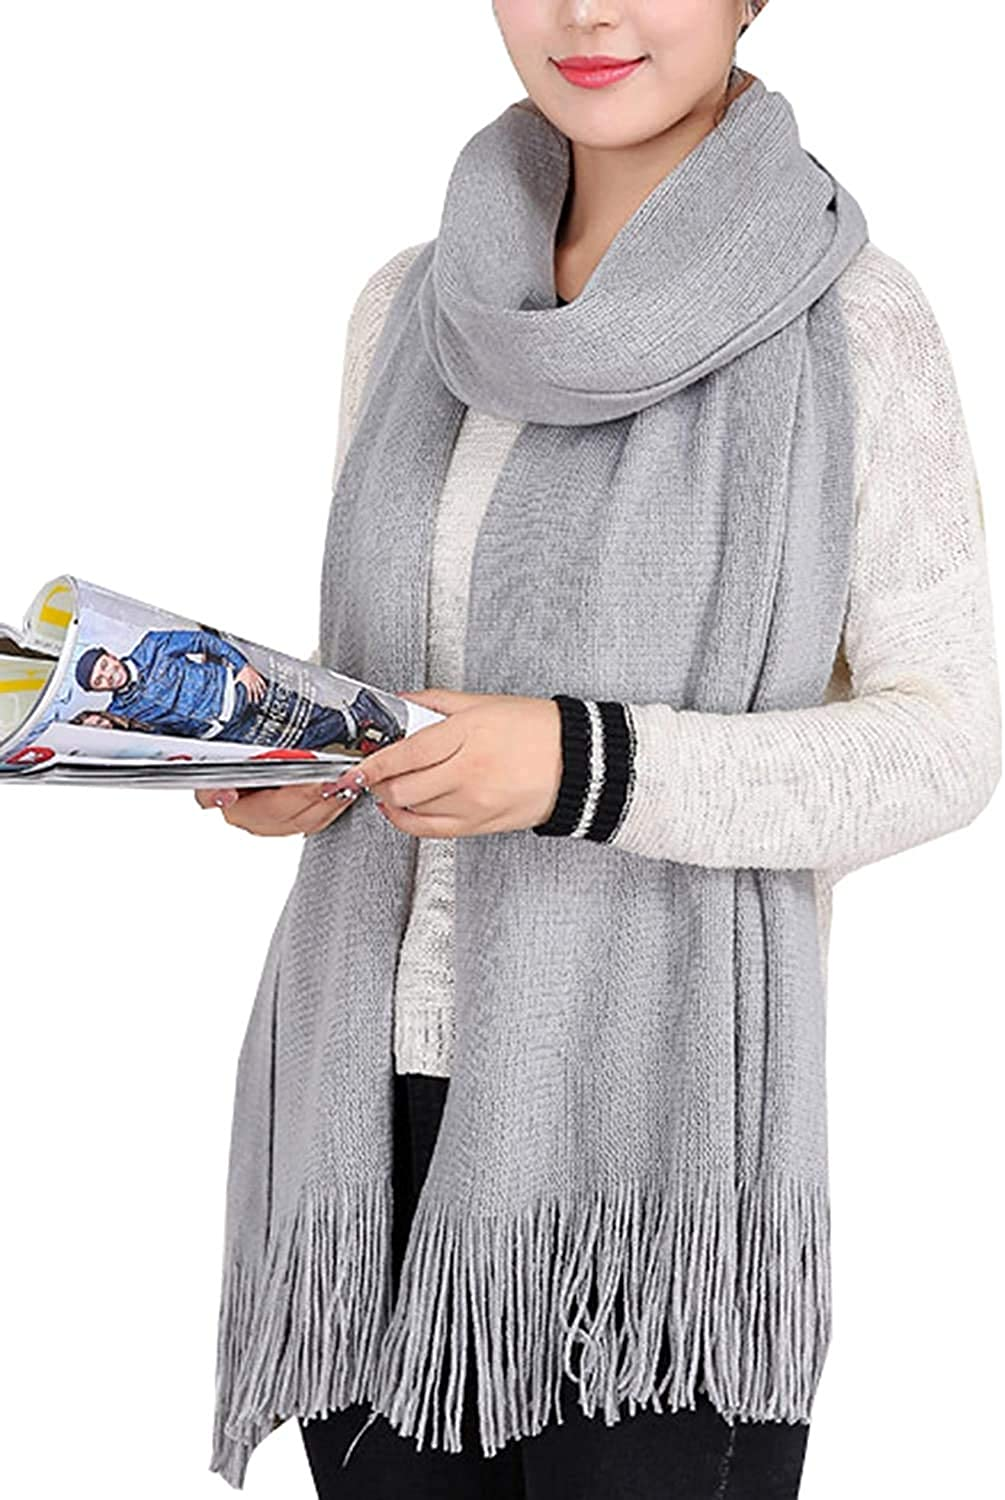 Women's Scarf Plaid Scarf Men'S and Women'S Top Necks MKLP Tassel Scarf Winter Ladies Scarf Large Warm Shawl Plaid Scarf Large Shawl Keep Warm and Prevent Cold Fringed